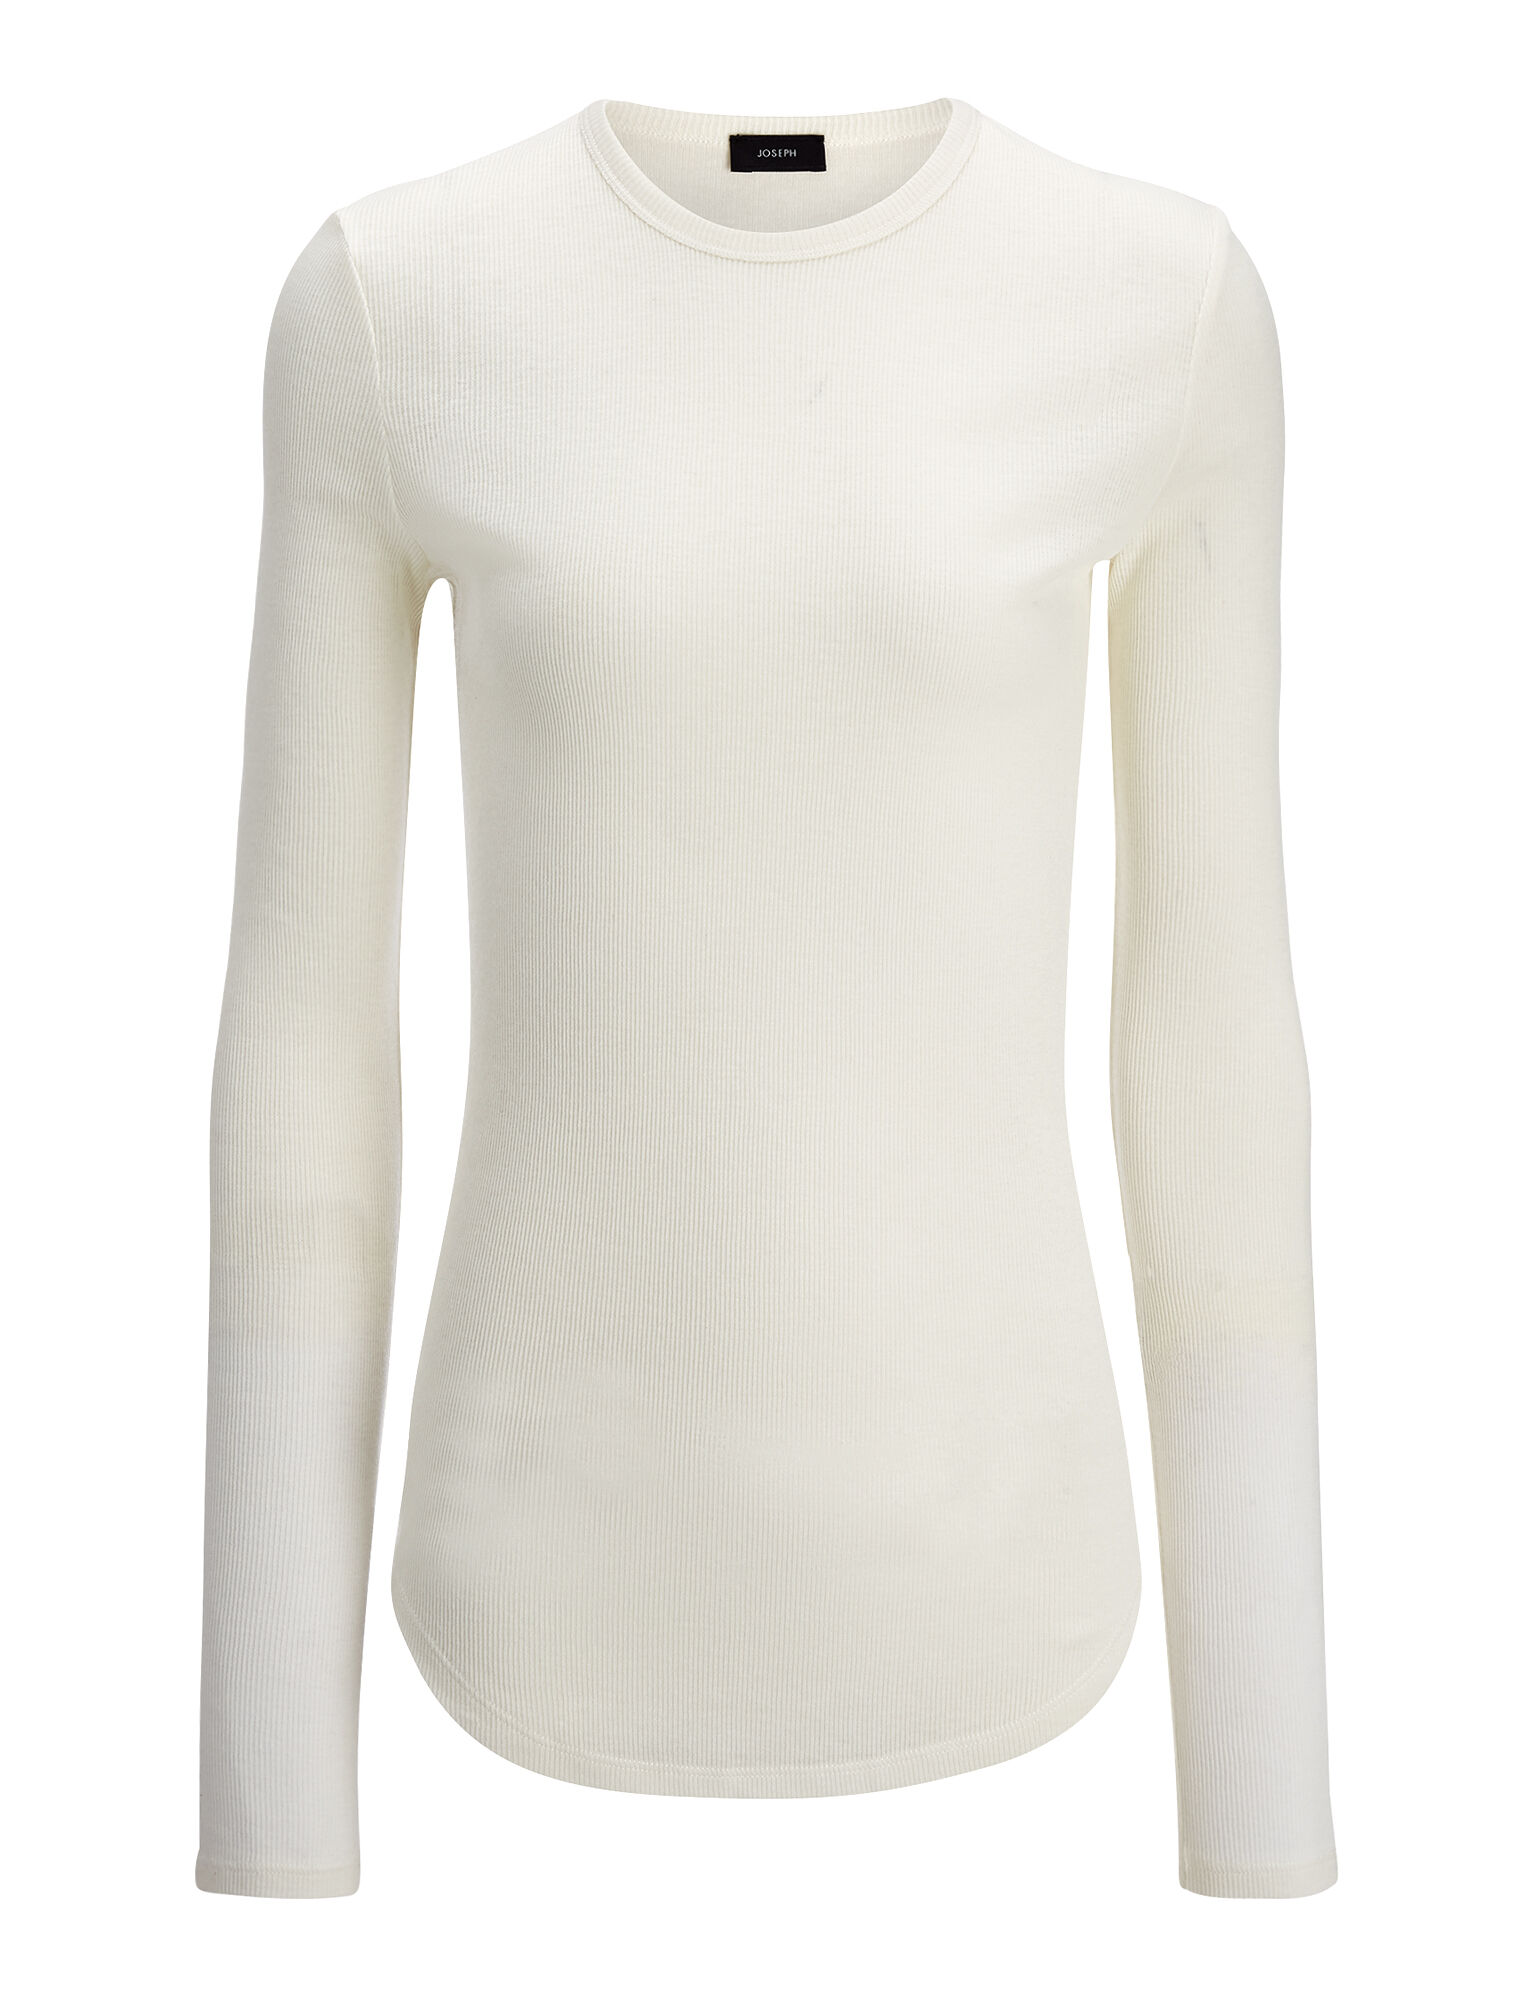 Joseph, Cotton Cashmere Rib Top, in ECRU